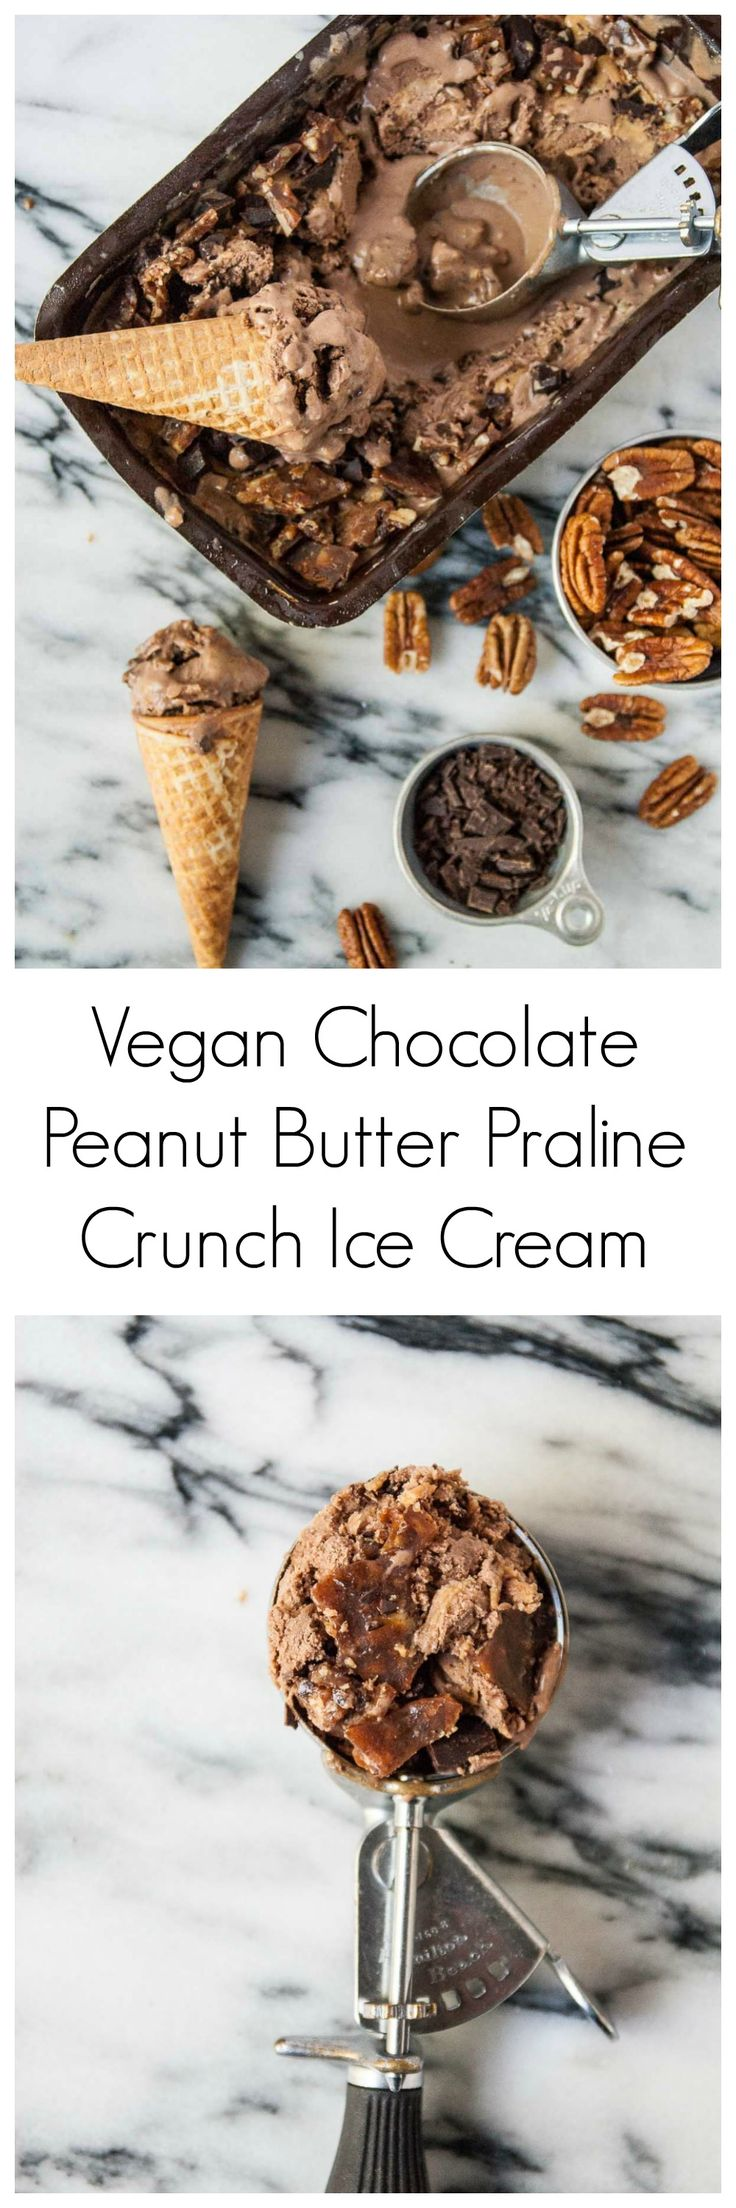 Vegan Peanut Butter Chocolate Praline Crunch Ice Cream- Vegan praline crunch ice cream is kicked up a notch with chunks of chocolate and swirls of creamy peanut butter!